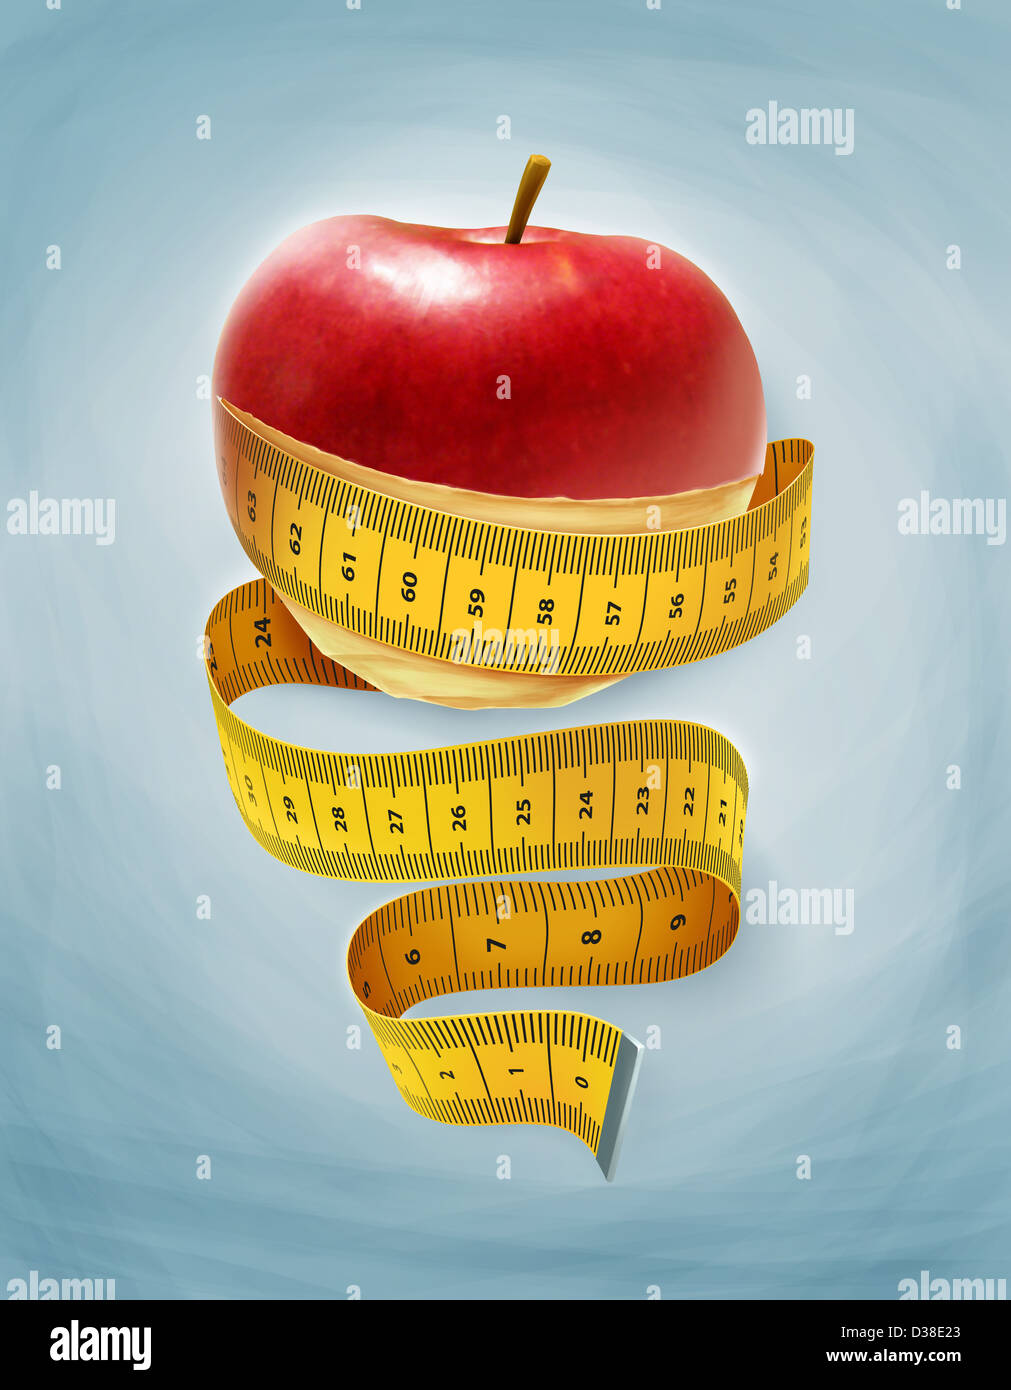 Illustrative image of an apple wrapped with measuring tape representing dieting - Stock Image